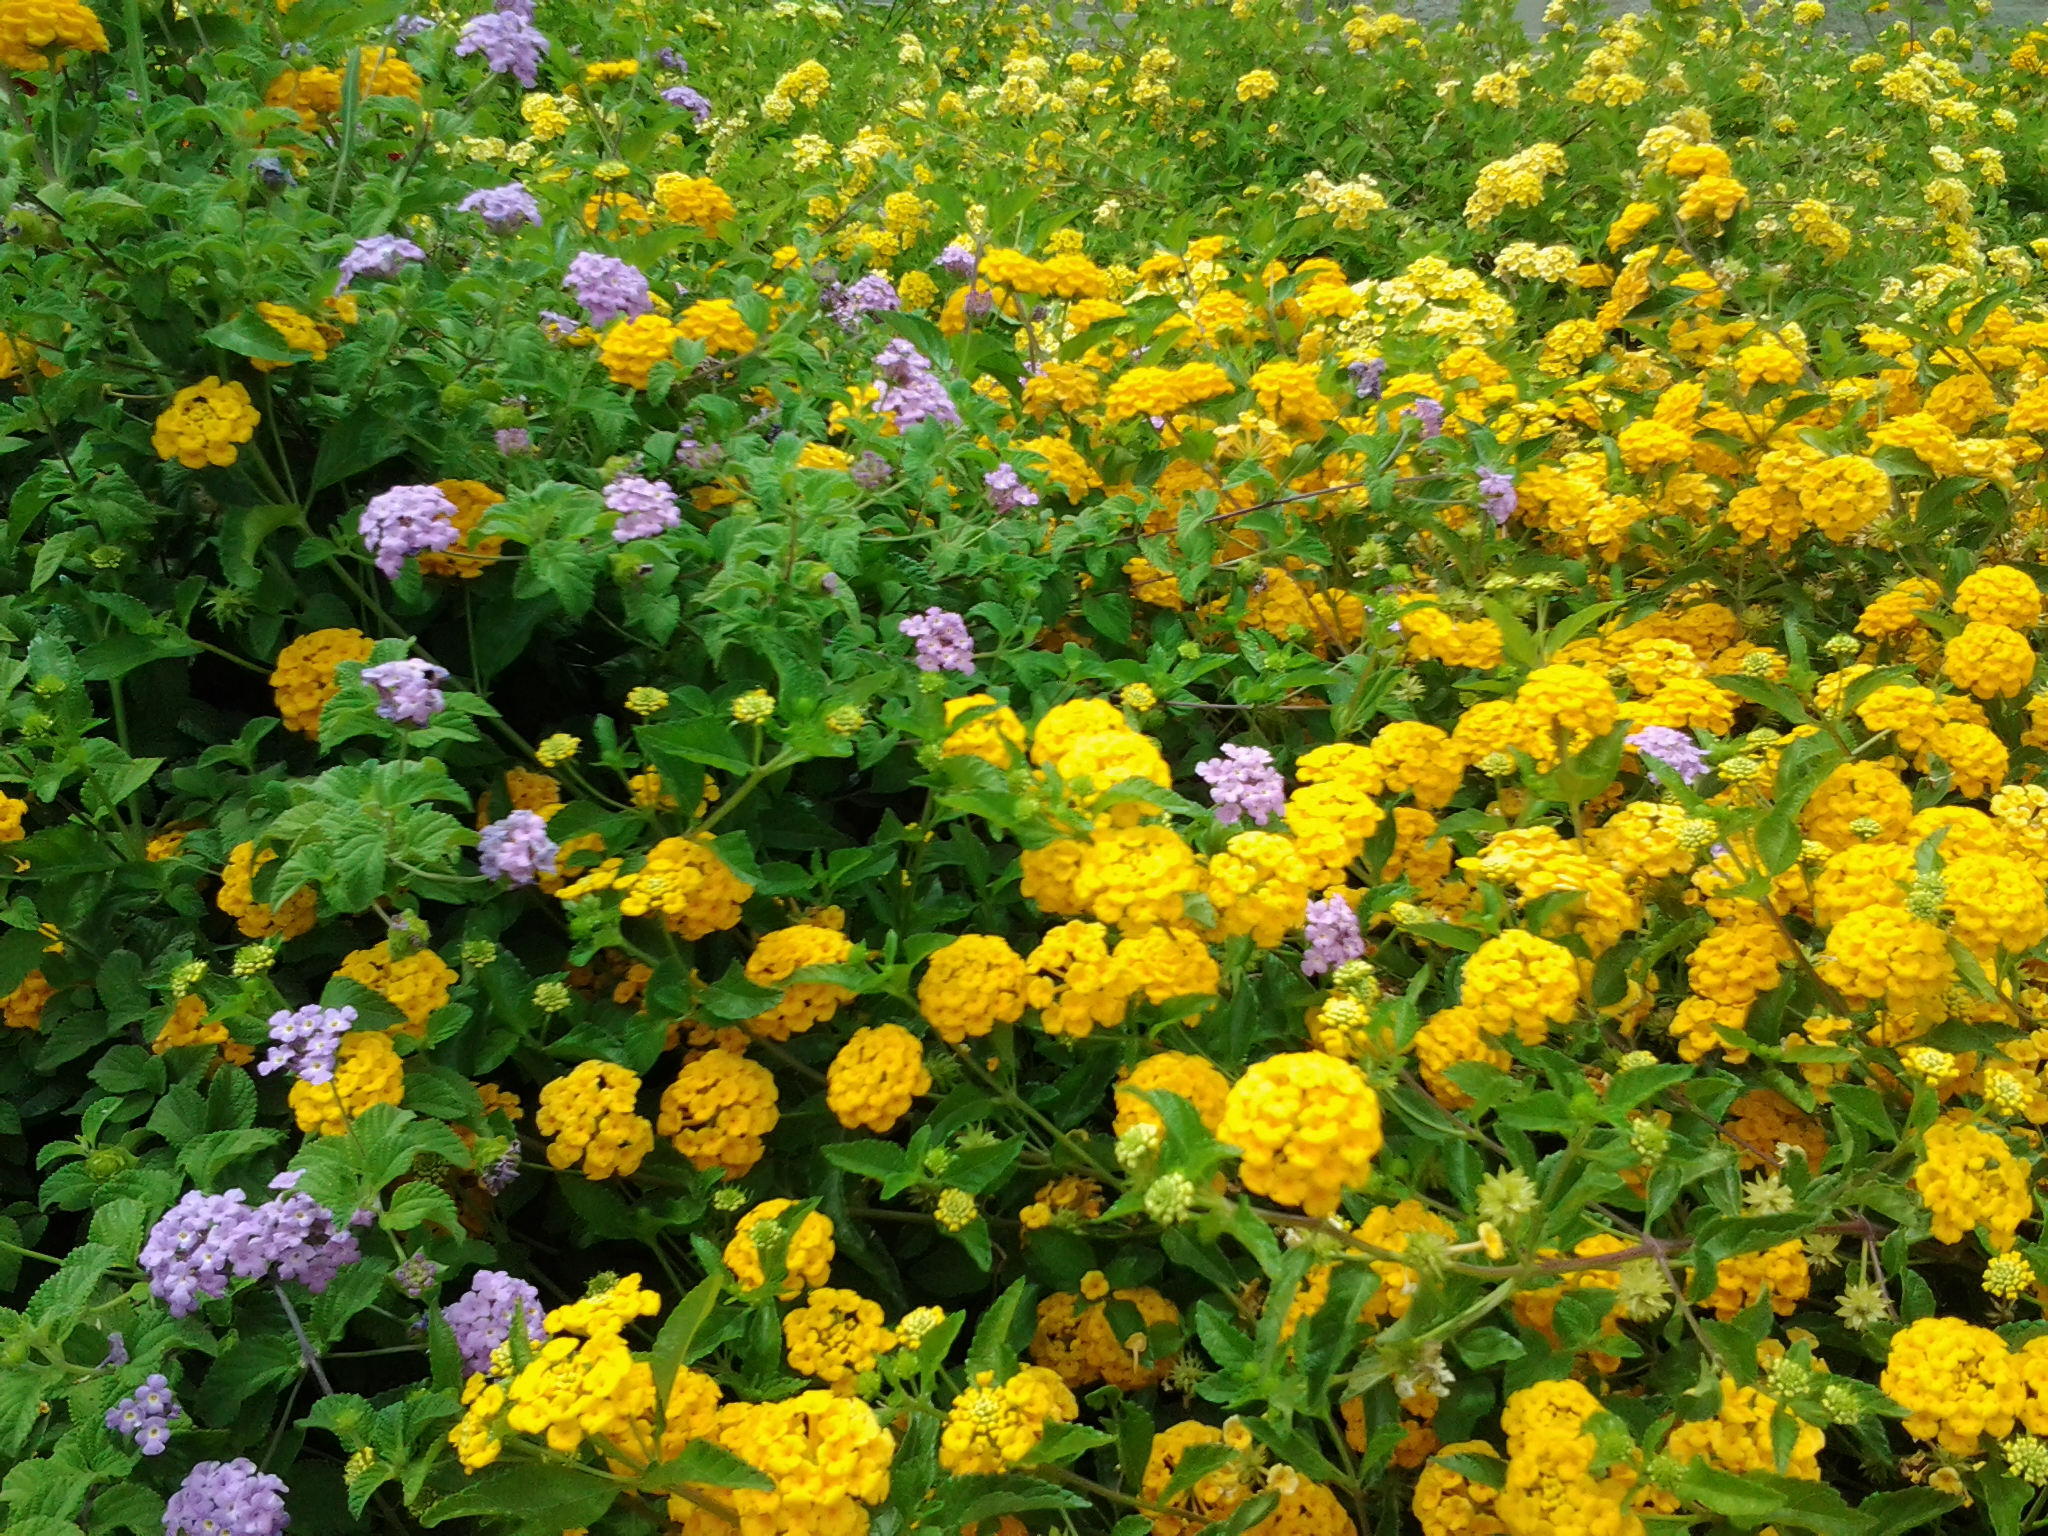 Drought Tolerant And Heat Resistant Flowering Plants Of The Desert